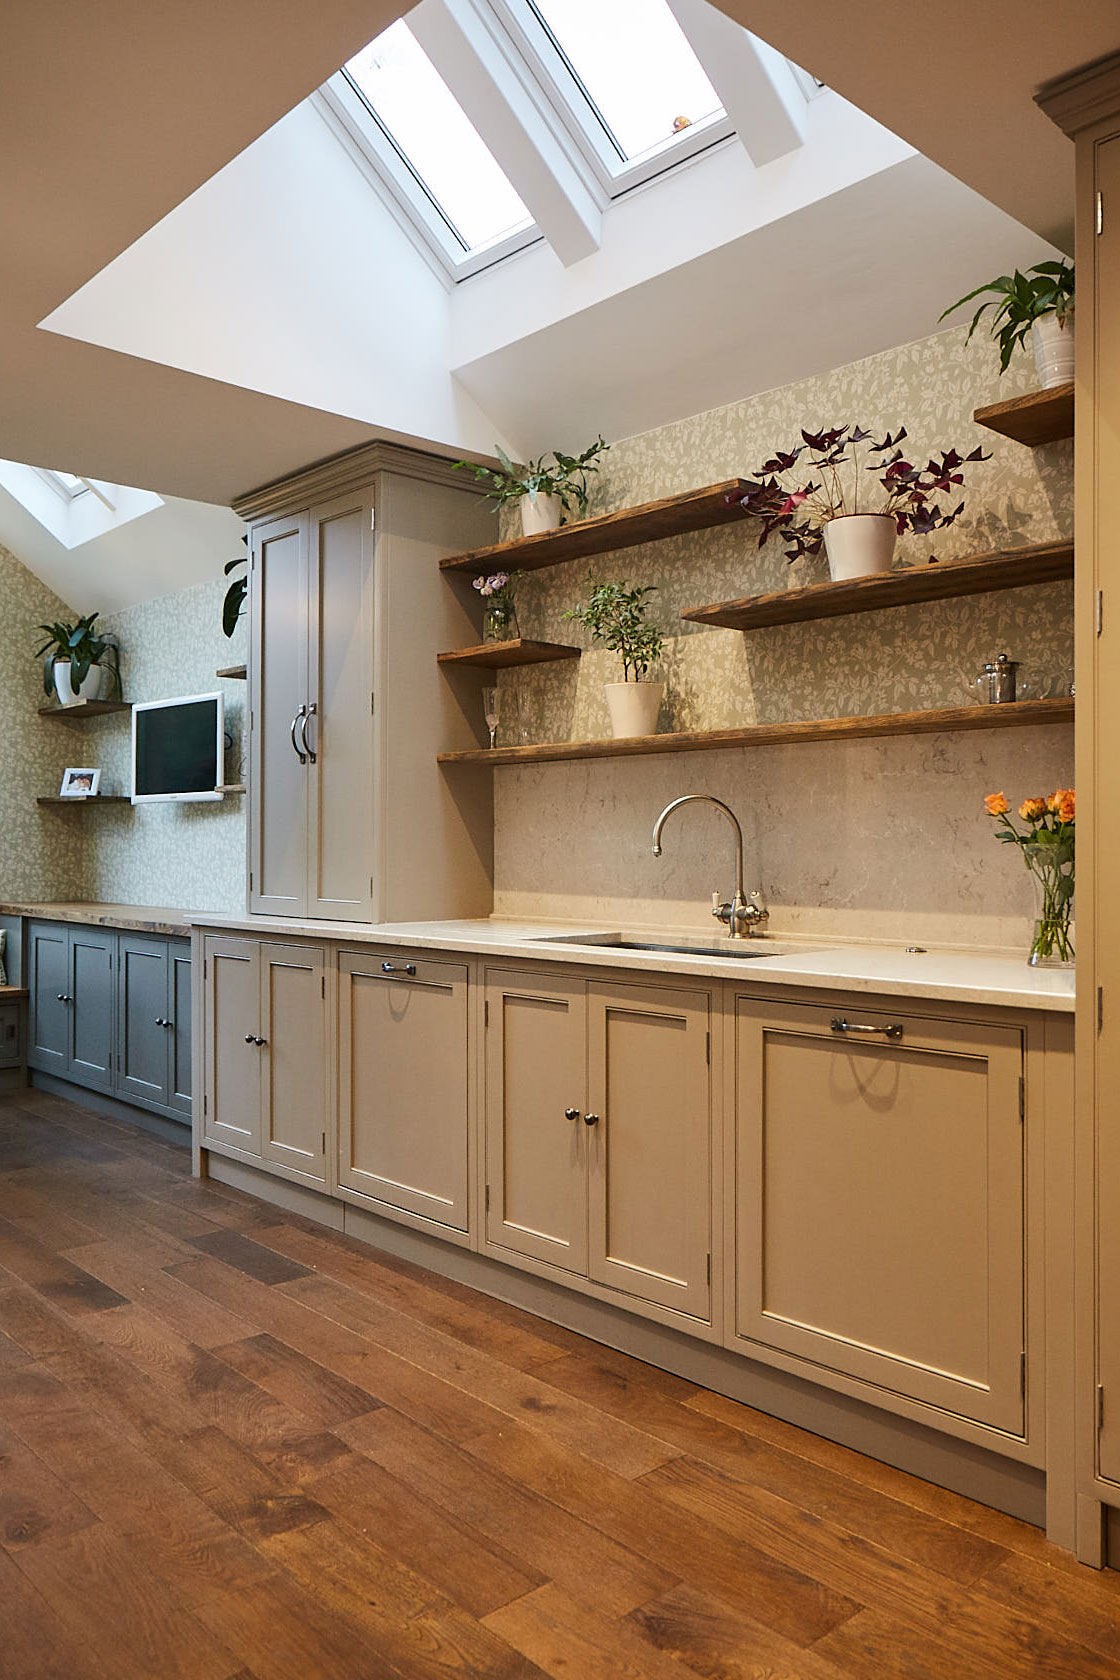 Mixture of painted cabinets and floating oak shelves